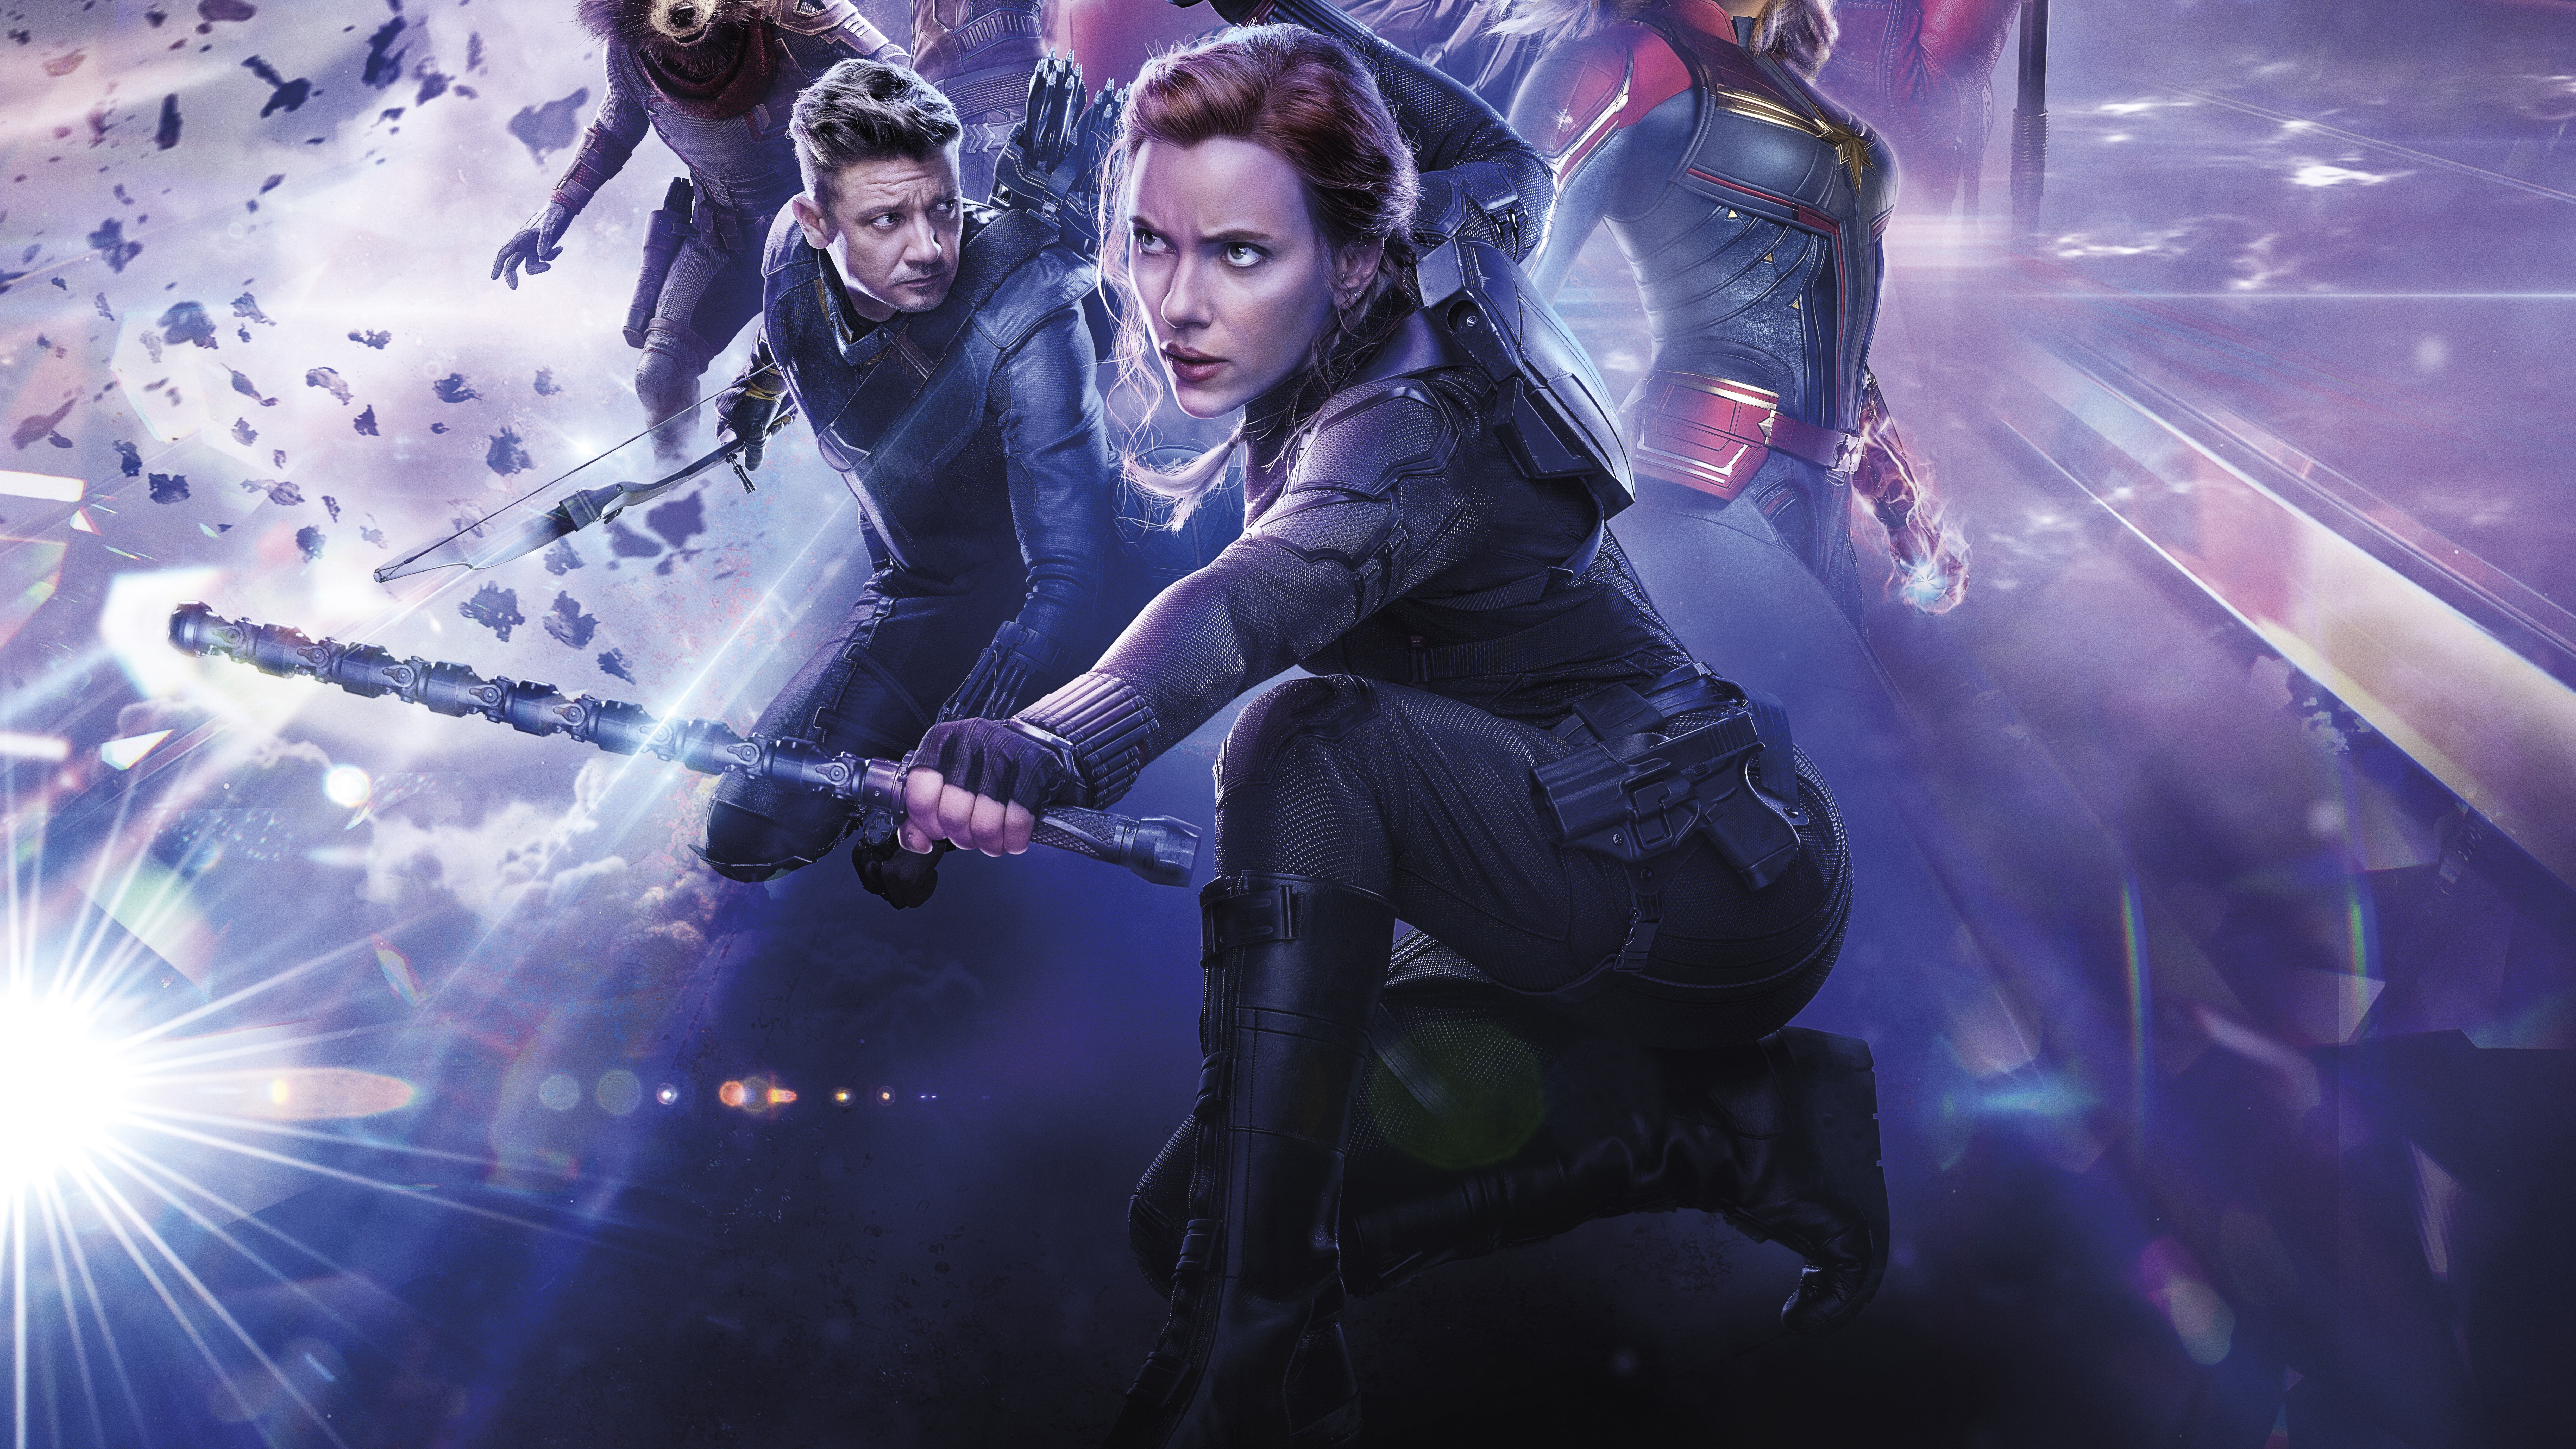 1280x1024 Black Widow Avengers Endgame 10k 1280x1024 Resolution Hd 4k Wallpapers Images Backgrounds Photos And Pictures